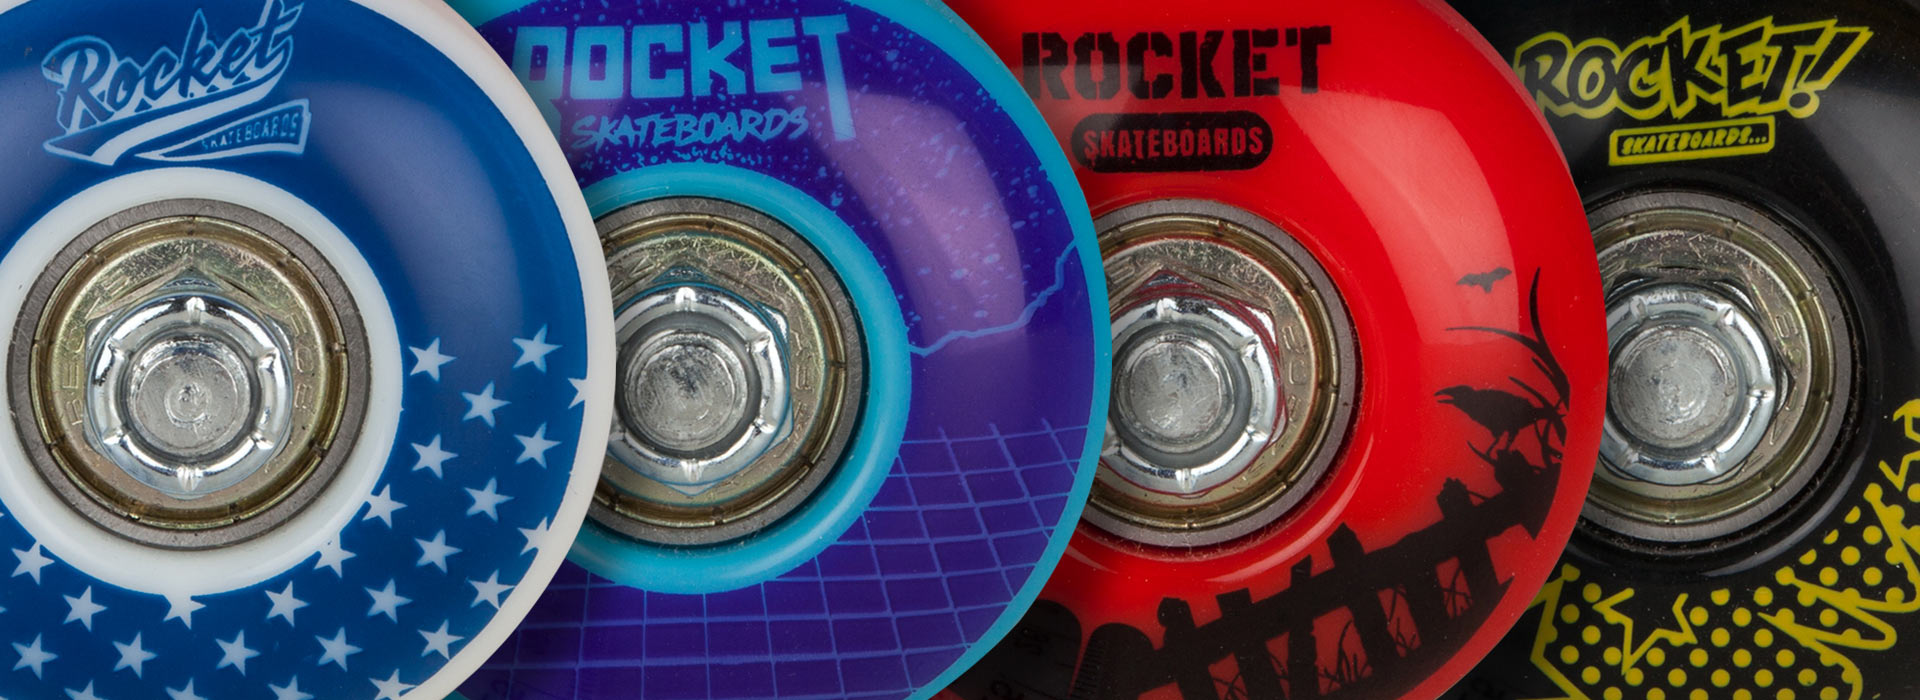 Rocket beginner skateboard complete - Logo Series